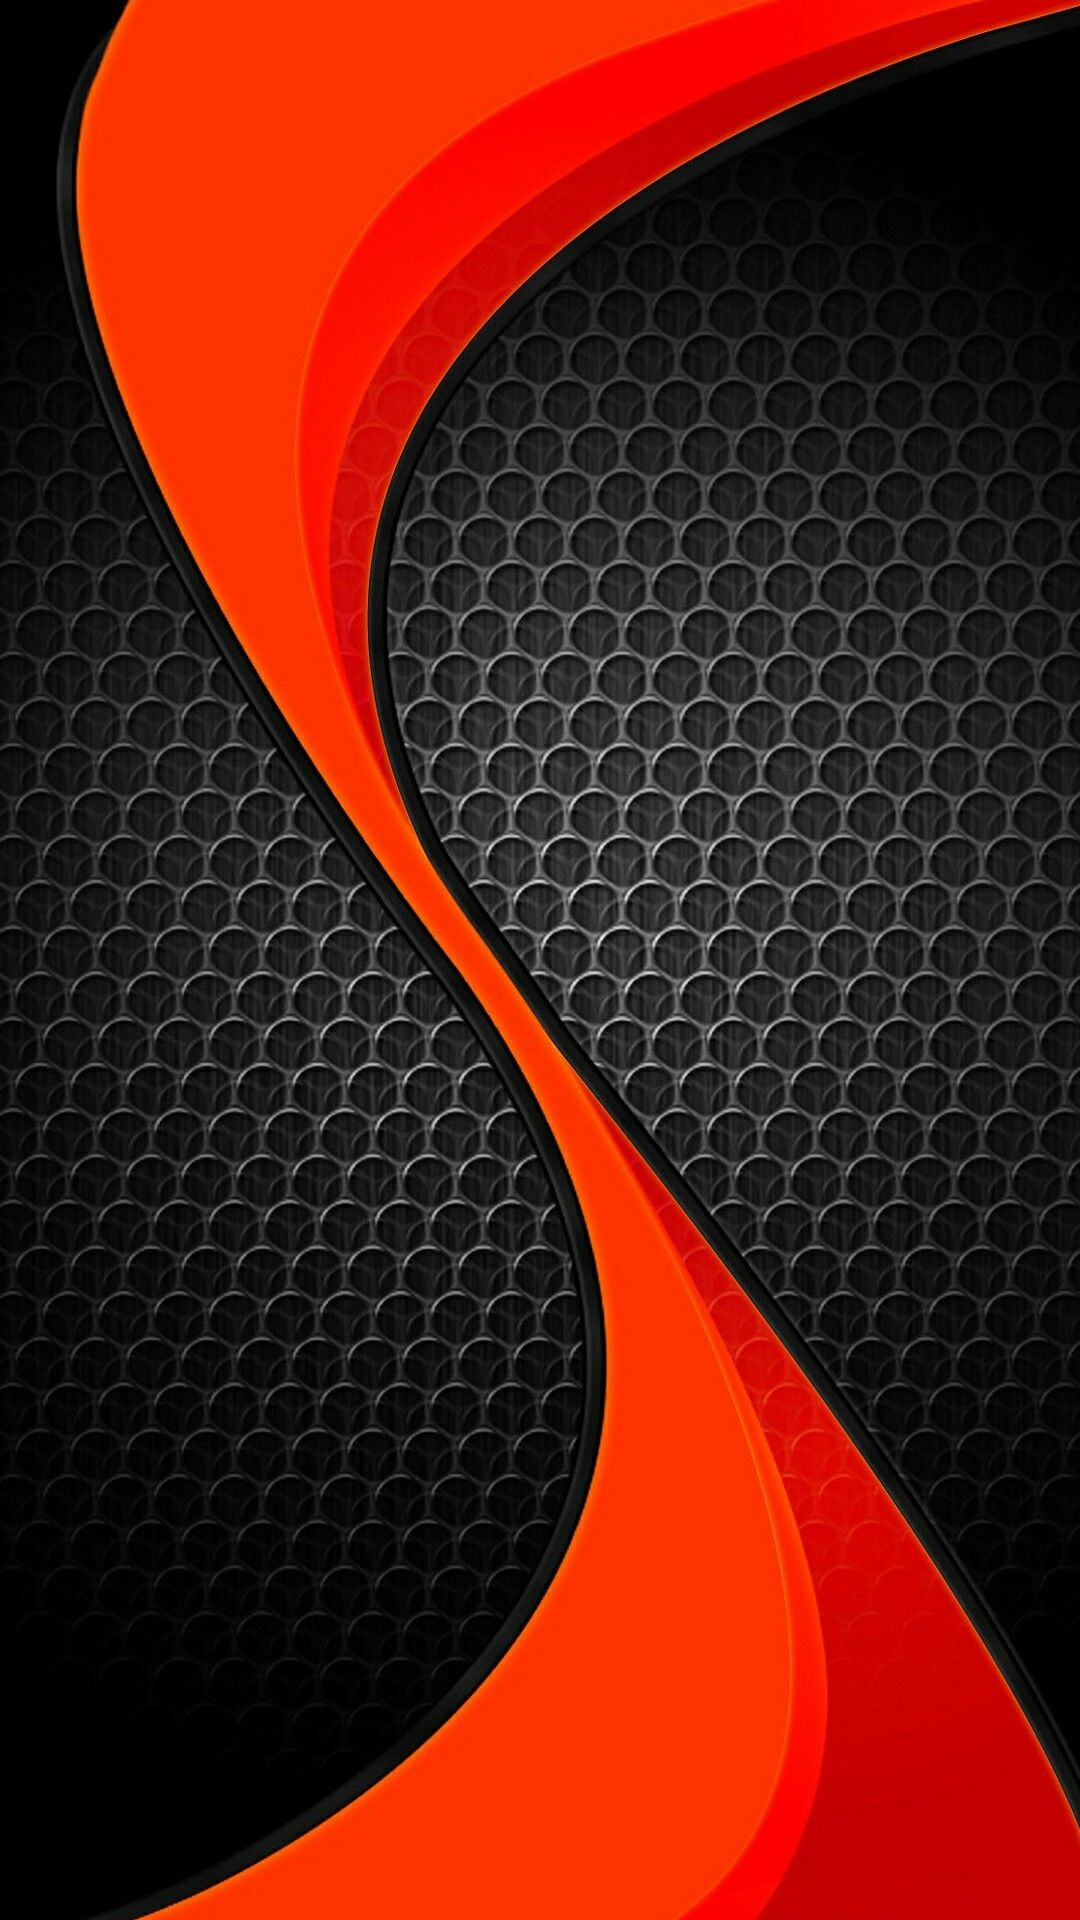 Pin By Wurth It On Wallpapers For Samsung Red Wallpaper Orange Wallpaper Abstract Wallpaper